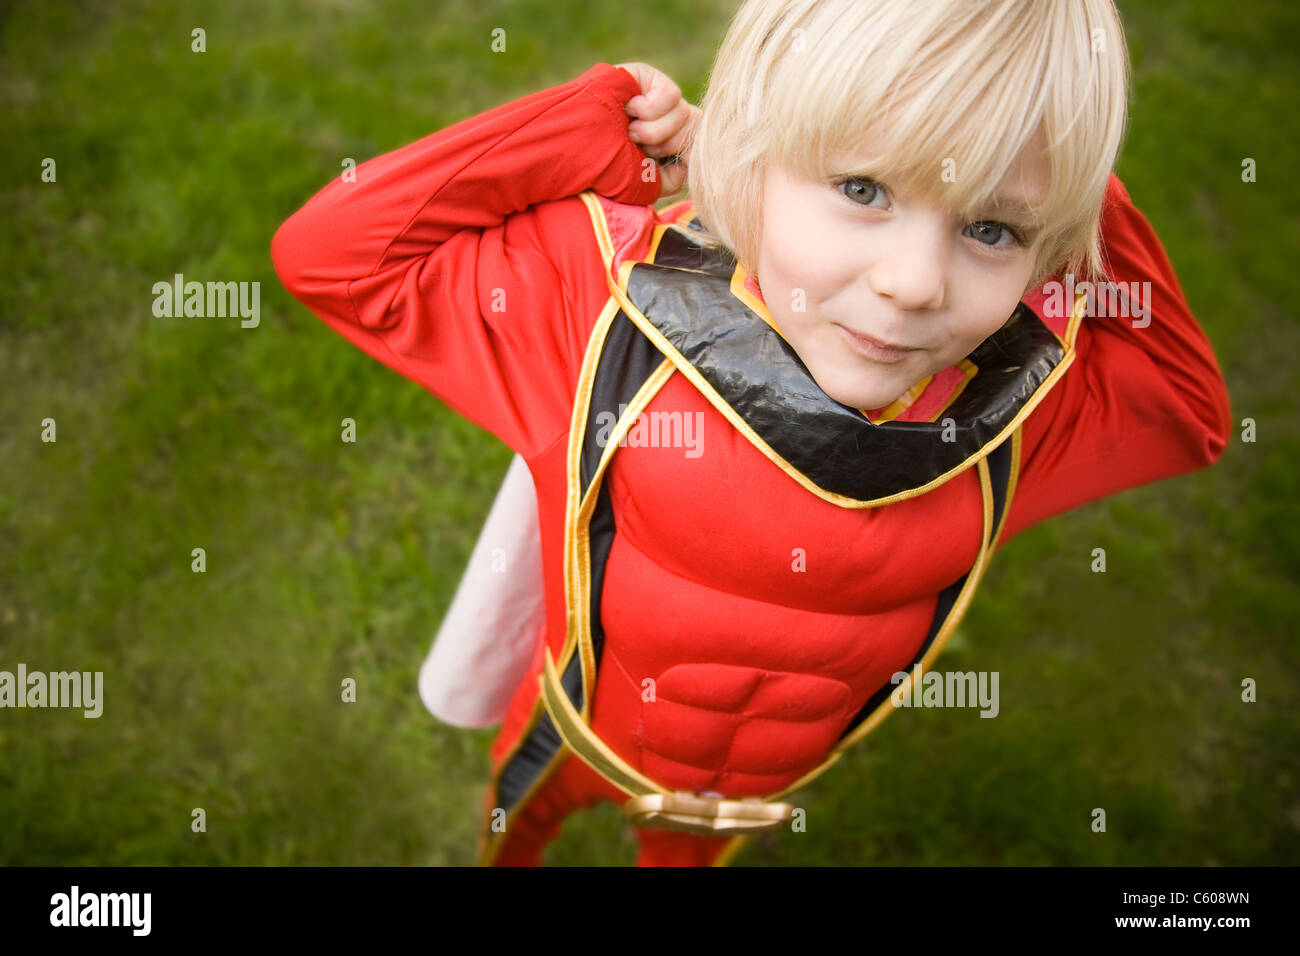 A young boy dressed as a superhero. - Stock Image